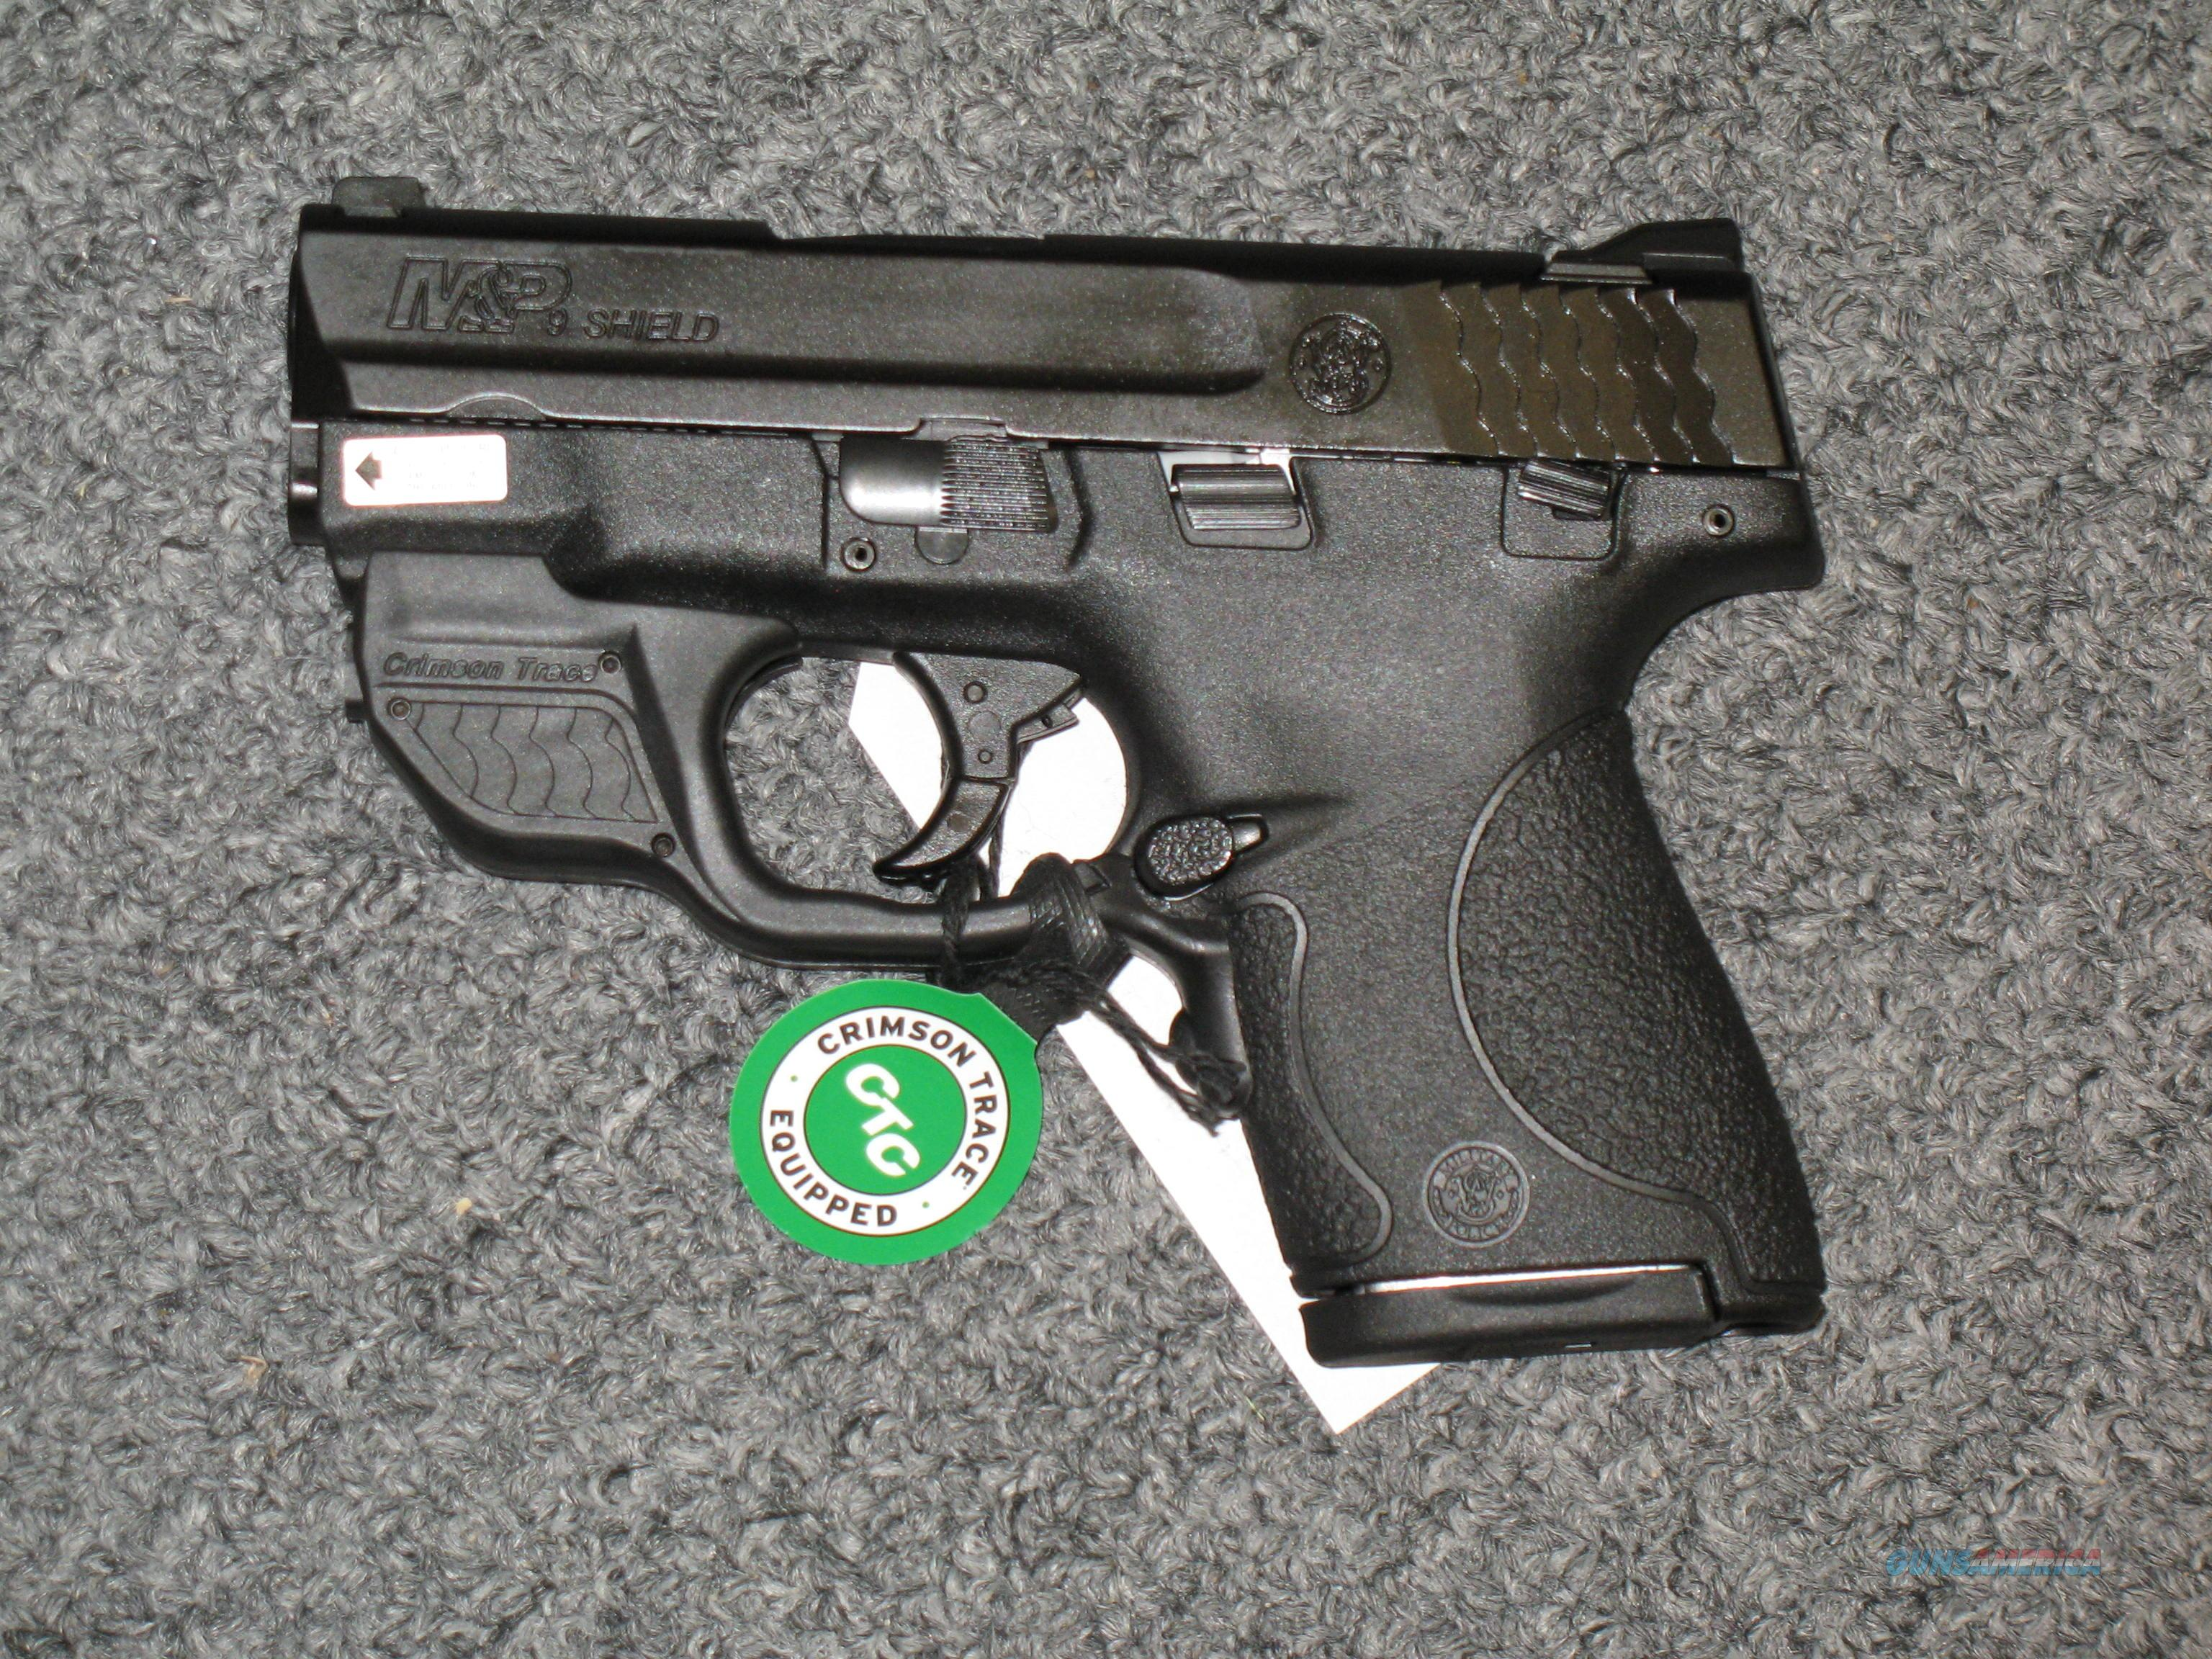 Smith & Wesson M&P 9 Shield with Crimson Trace Green Laser  Guns > Pistols > Smith & Wesson Pistols - Autos > Polymer Frame